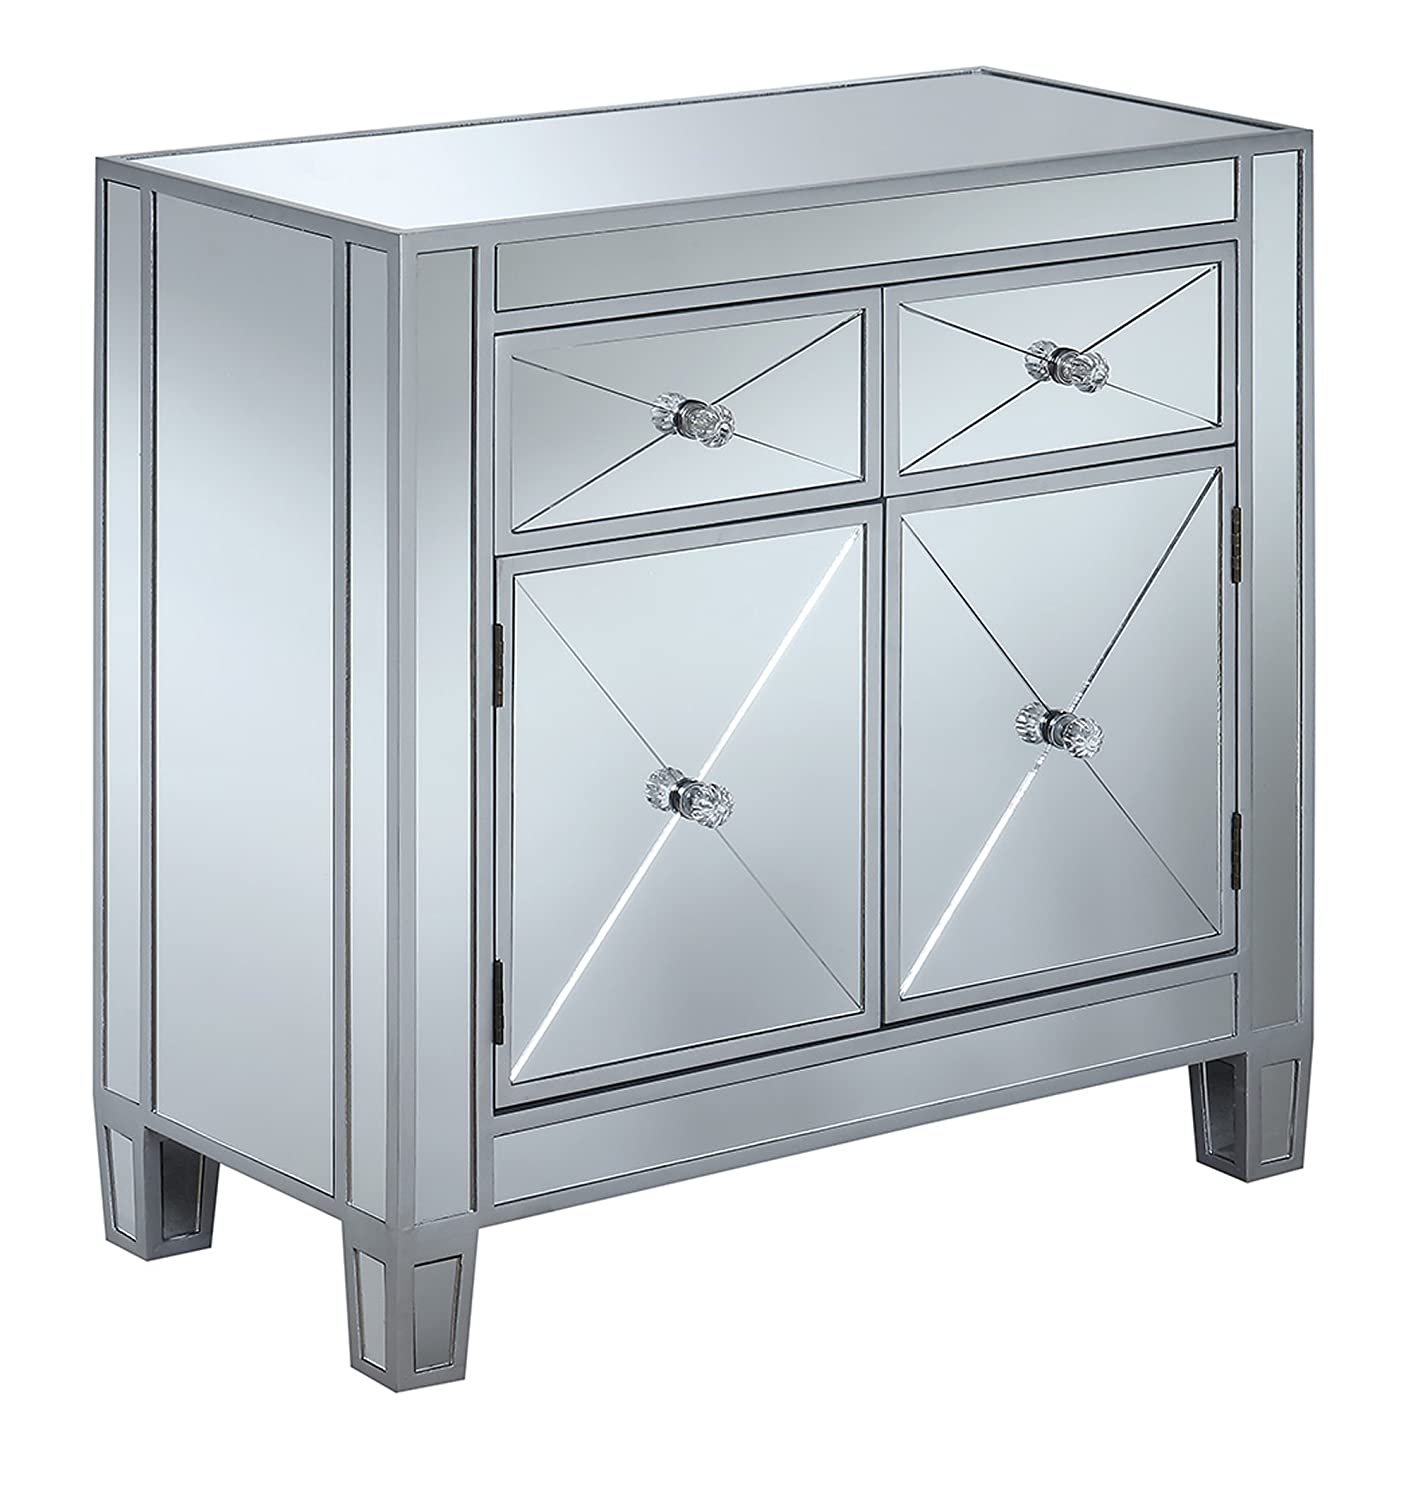 Amazon.com: Convenience Concepts Gold Coast Vineyard 2-Drawer Mirrored  Cabinet, Silver: Kitchen & Dining